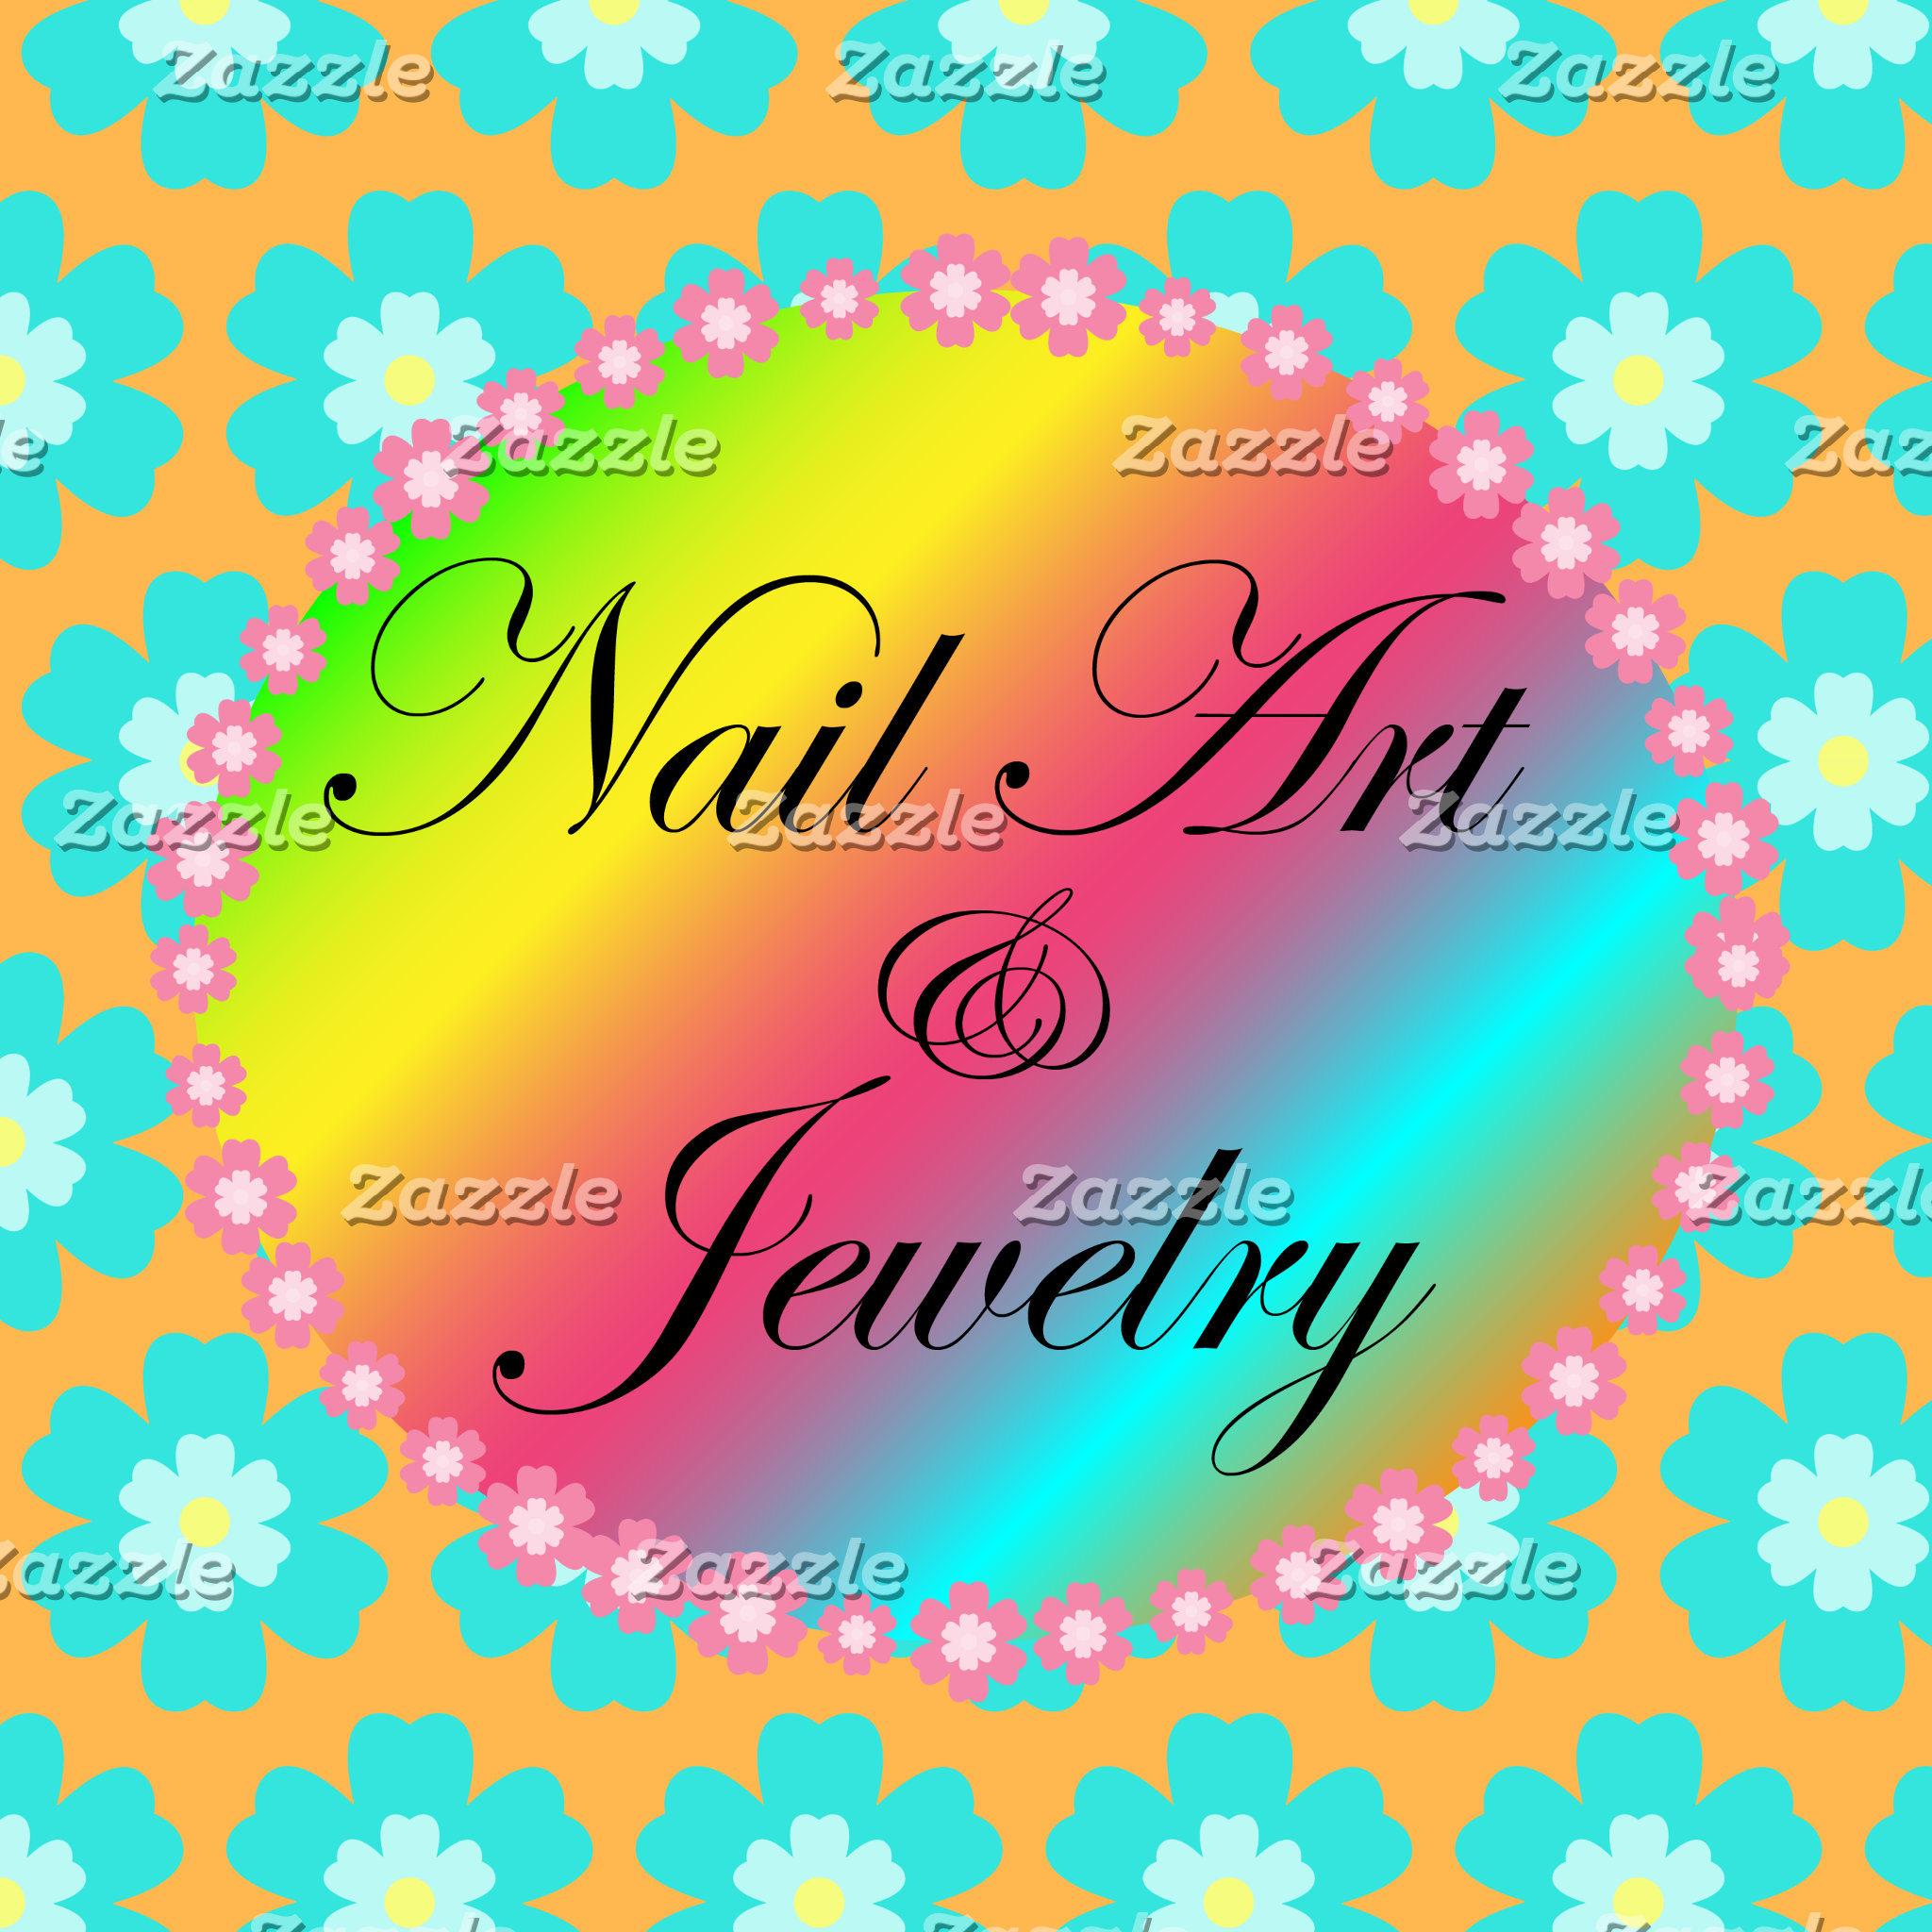 16. Jewelry And Nail Art